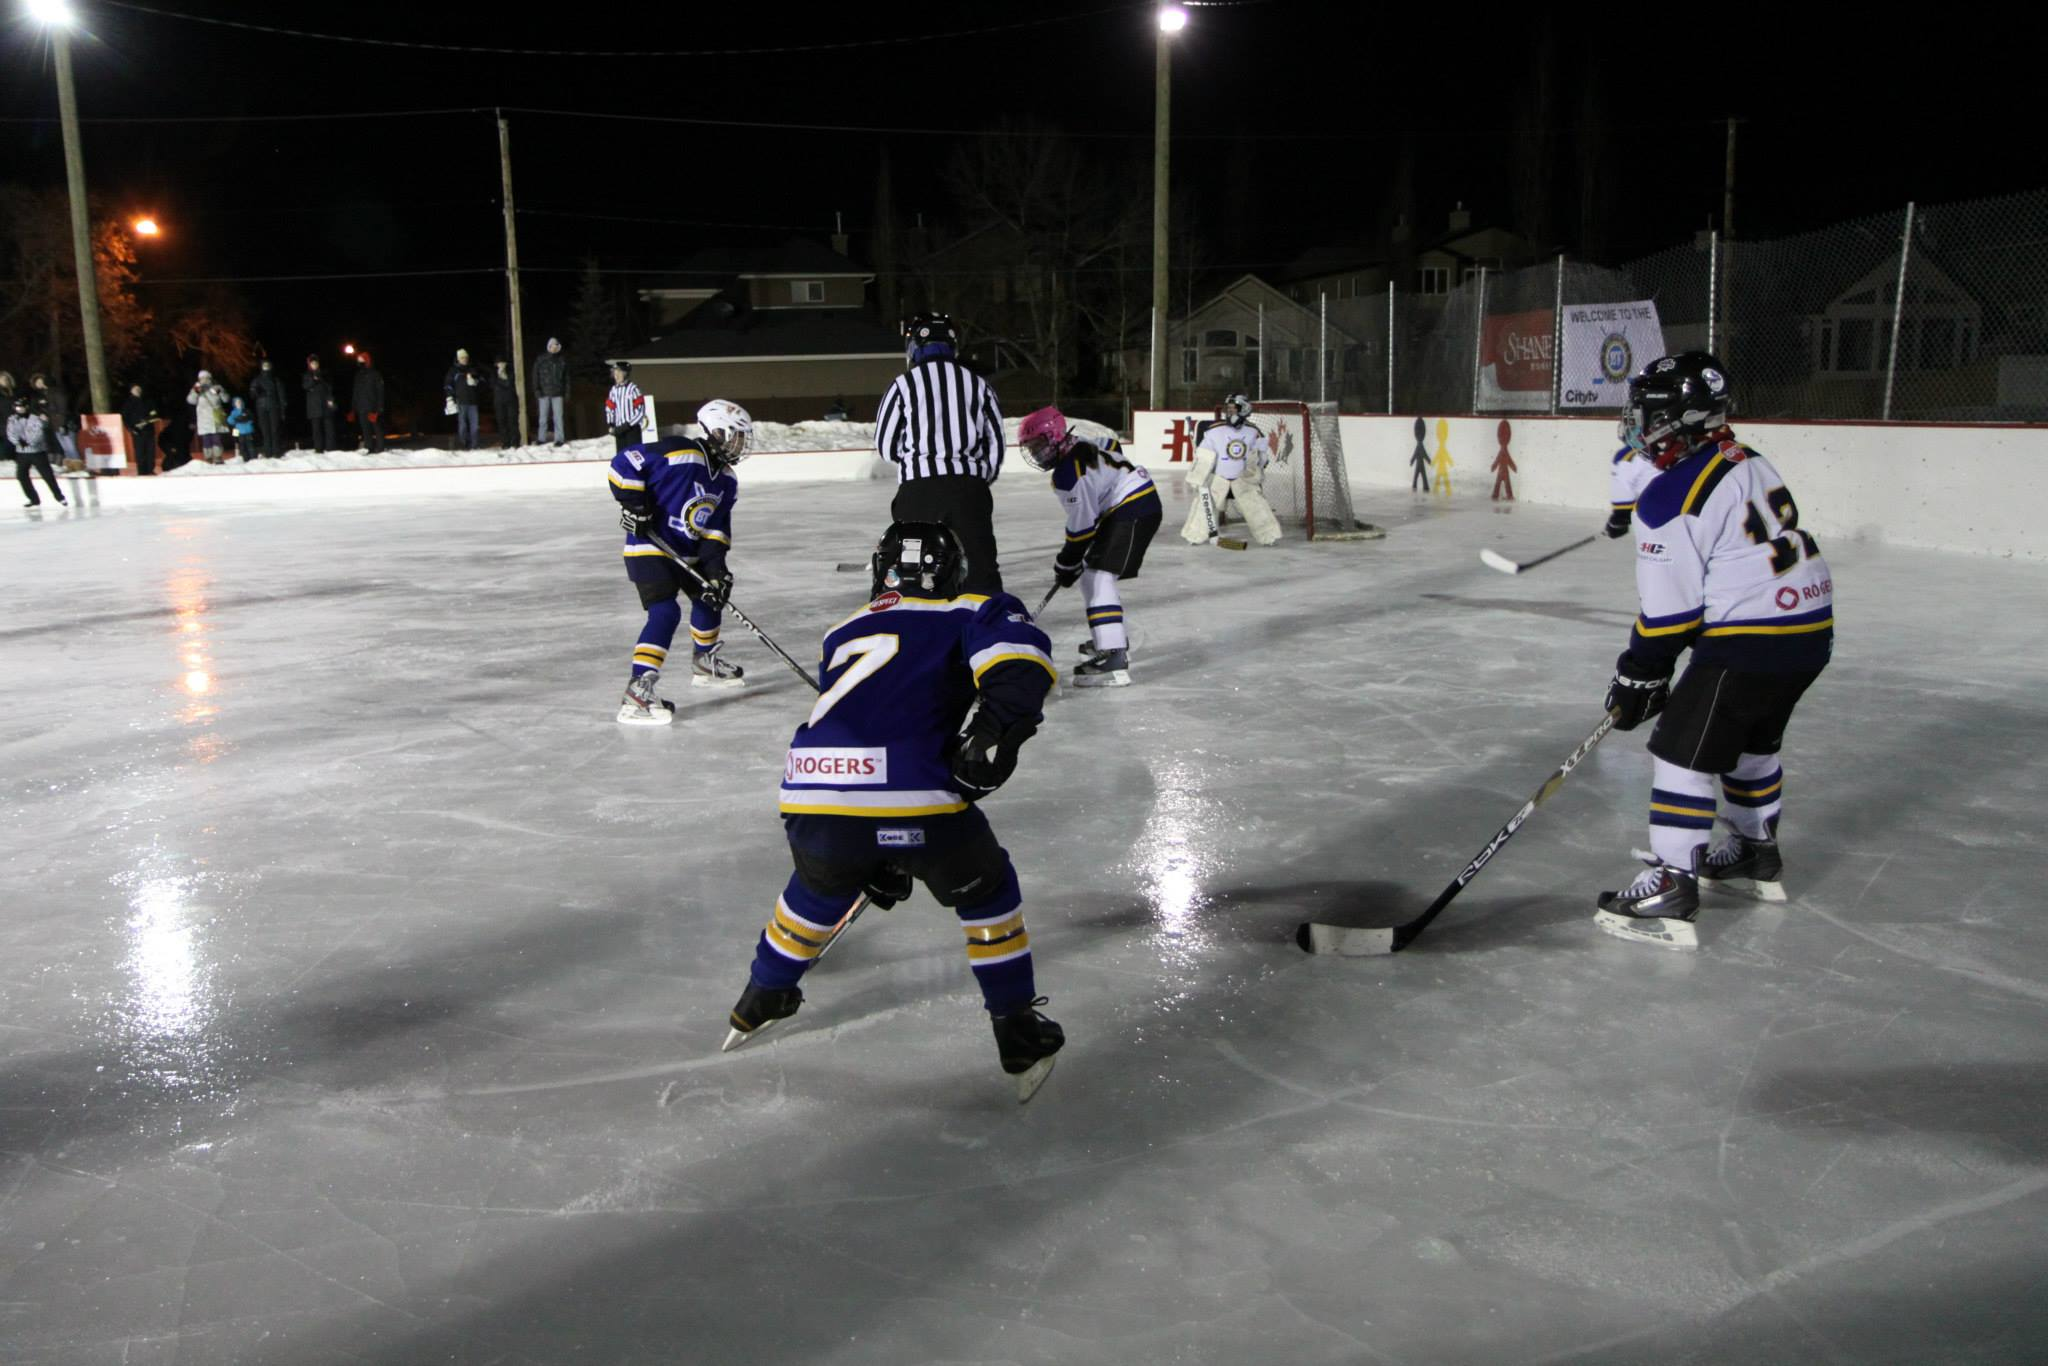 8 great Calgary outdoor hockey rinks for some shinny